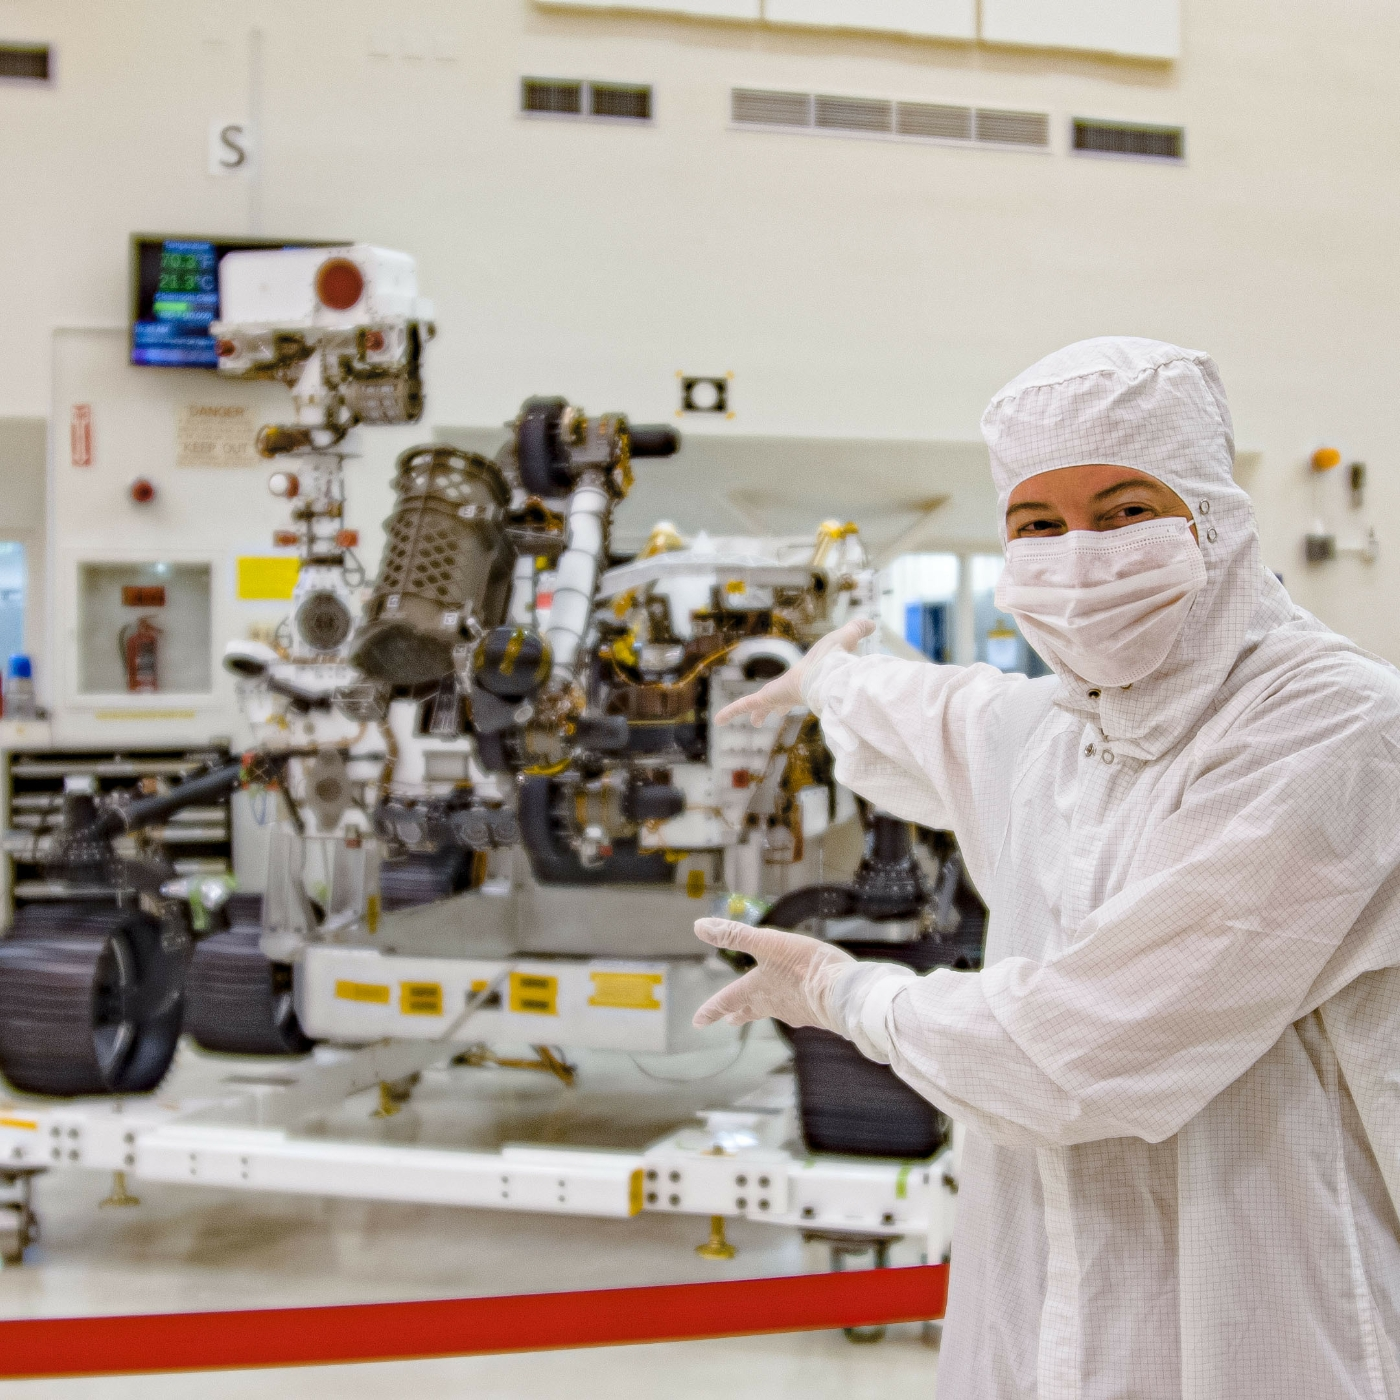 Caption: Planetary Society solar system specialist Emily Lakdawalla visits the Mars 2020 rover on 27 December 2019 during a media event held at NASA's Jet Propulsion Laboratory in Pasadena, California., Credit: Father & Sun Productions/The Planetary Society